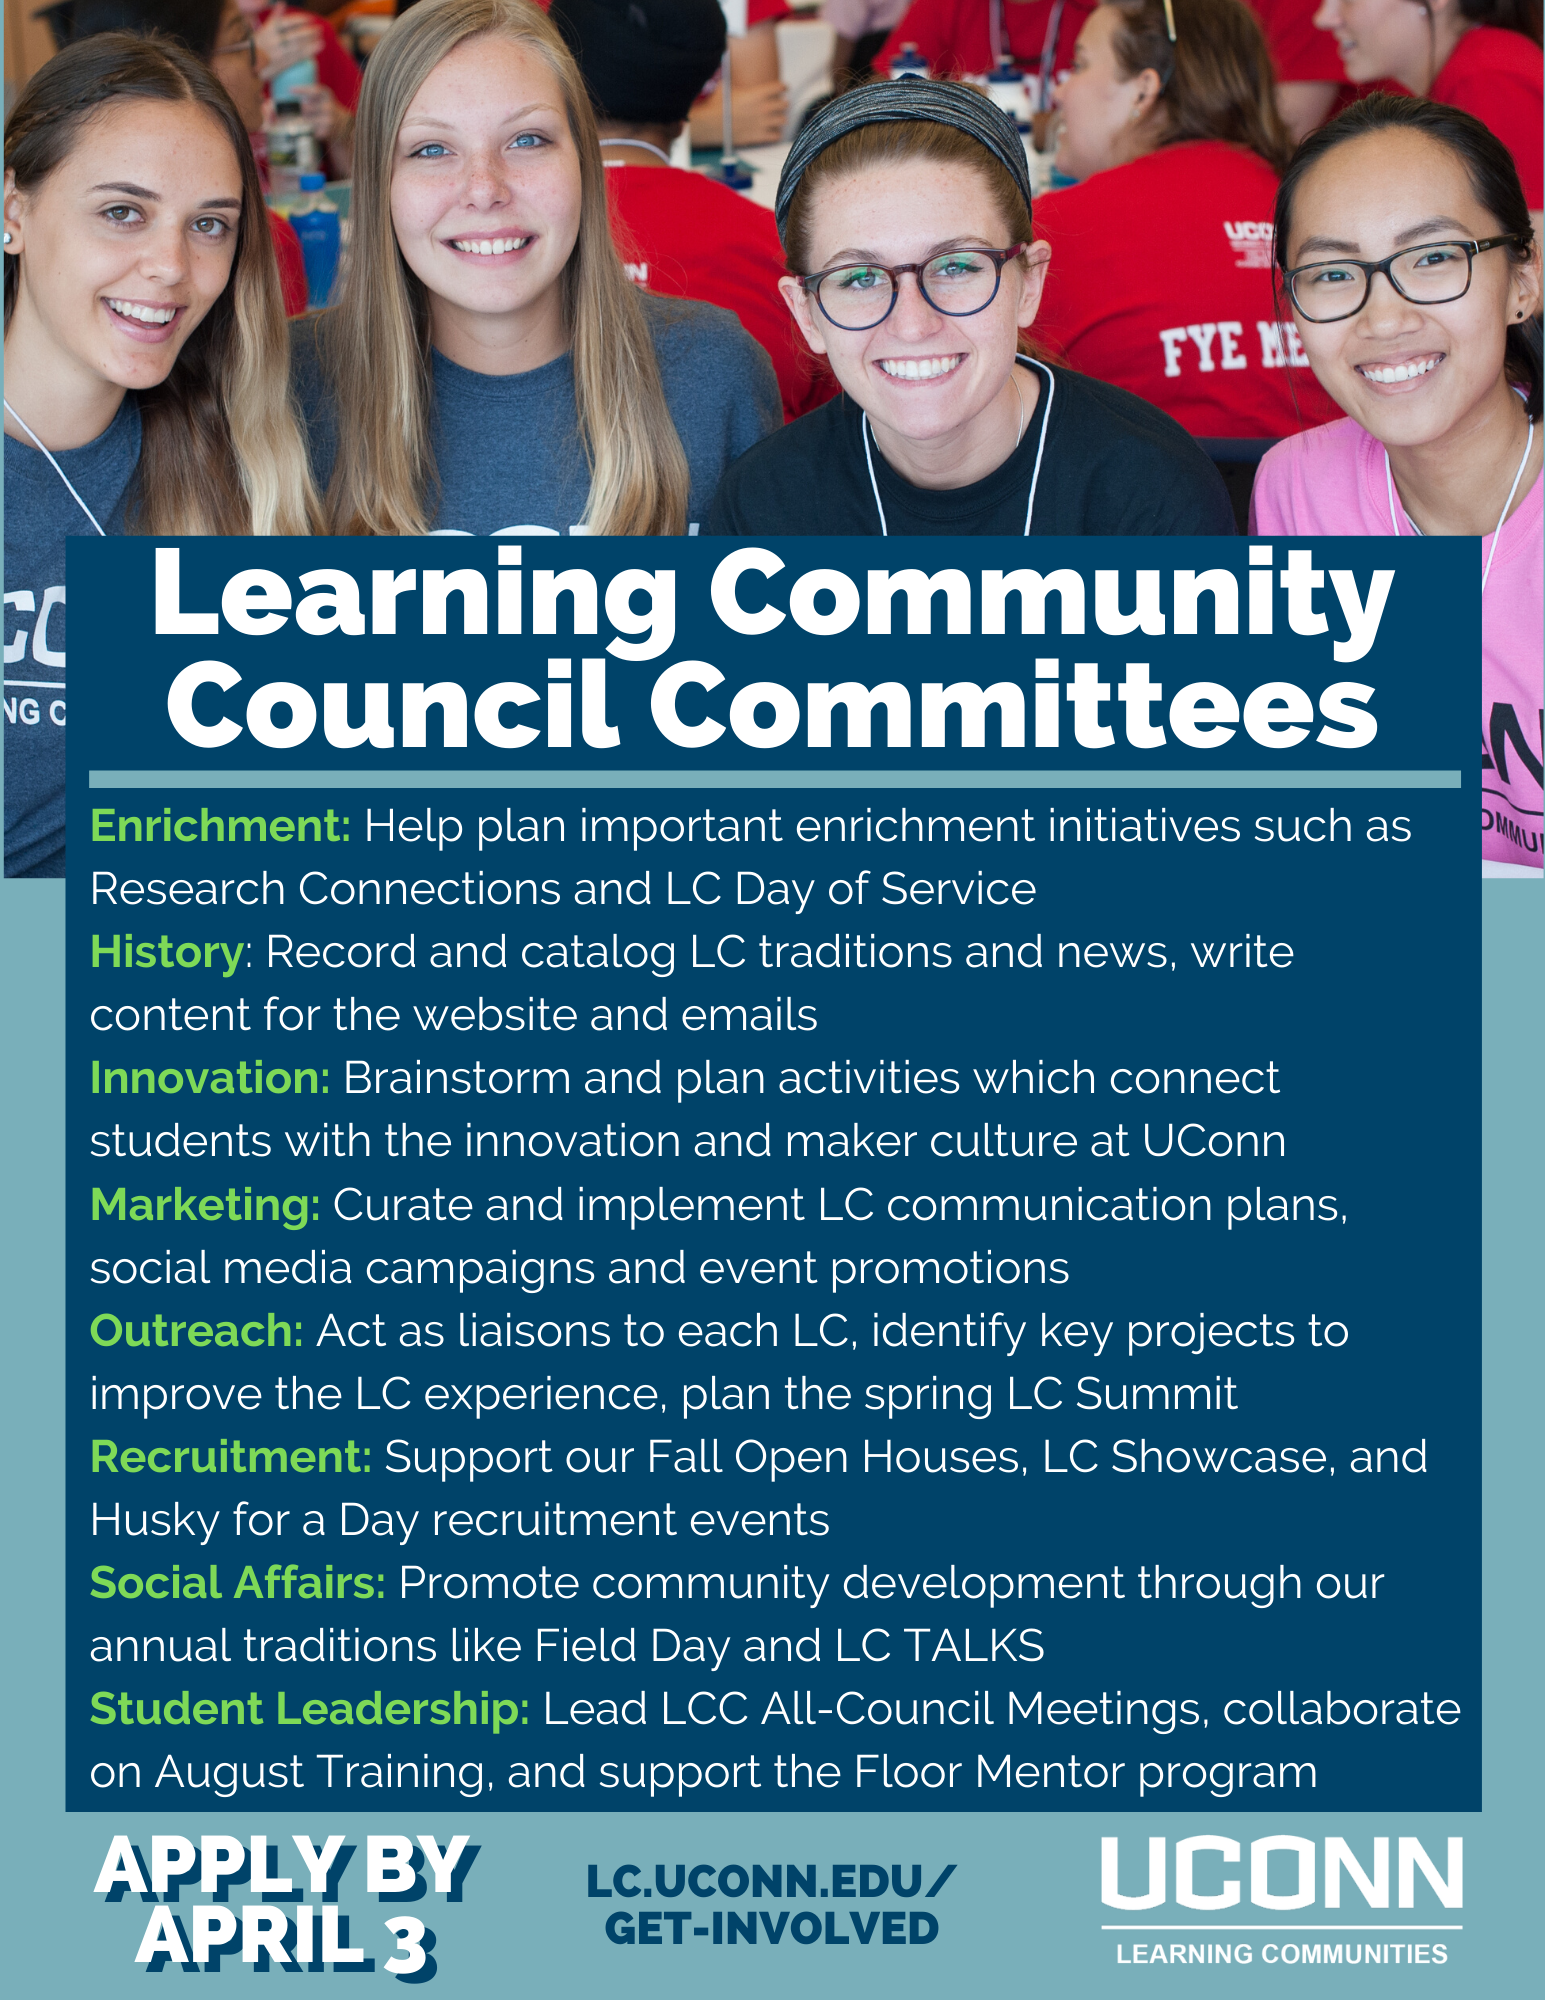 LCC Committee Descriptions